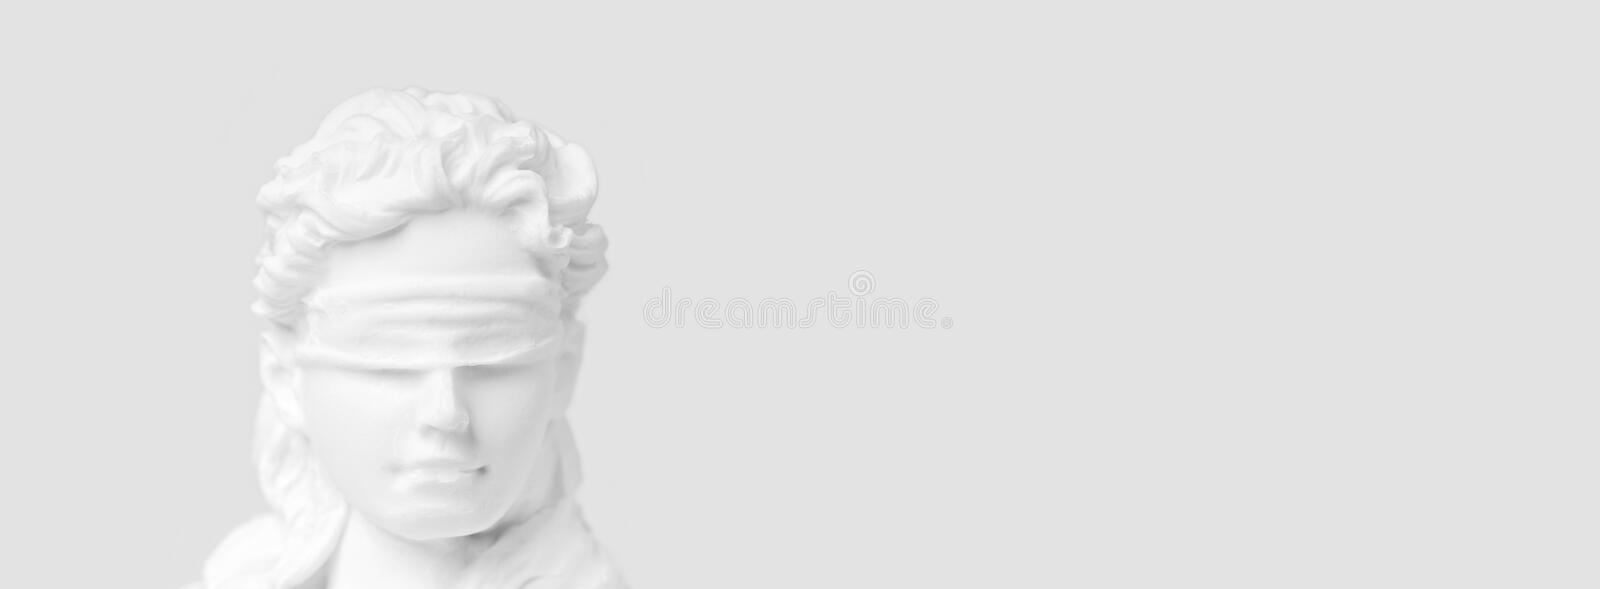 Close-up of lady justice. Close-up of lady justice figurine. Panoramic image with copy space royalty free stock photography